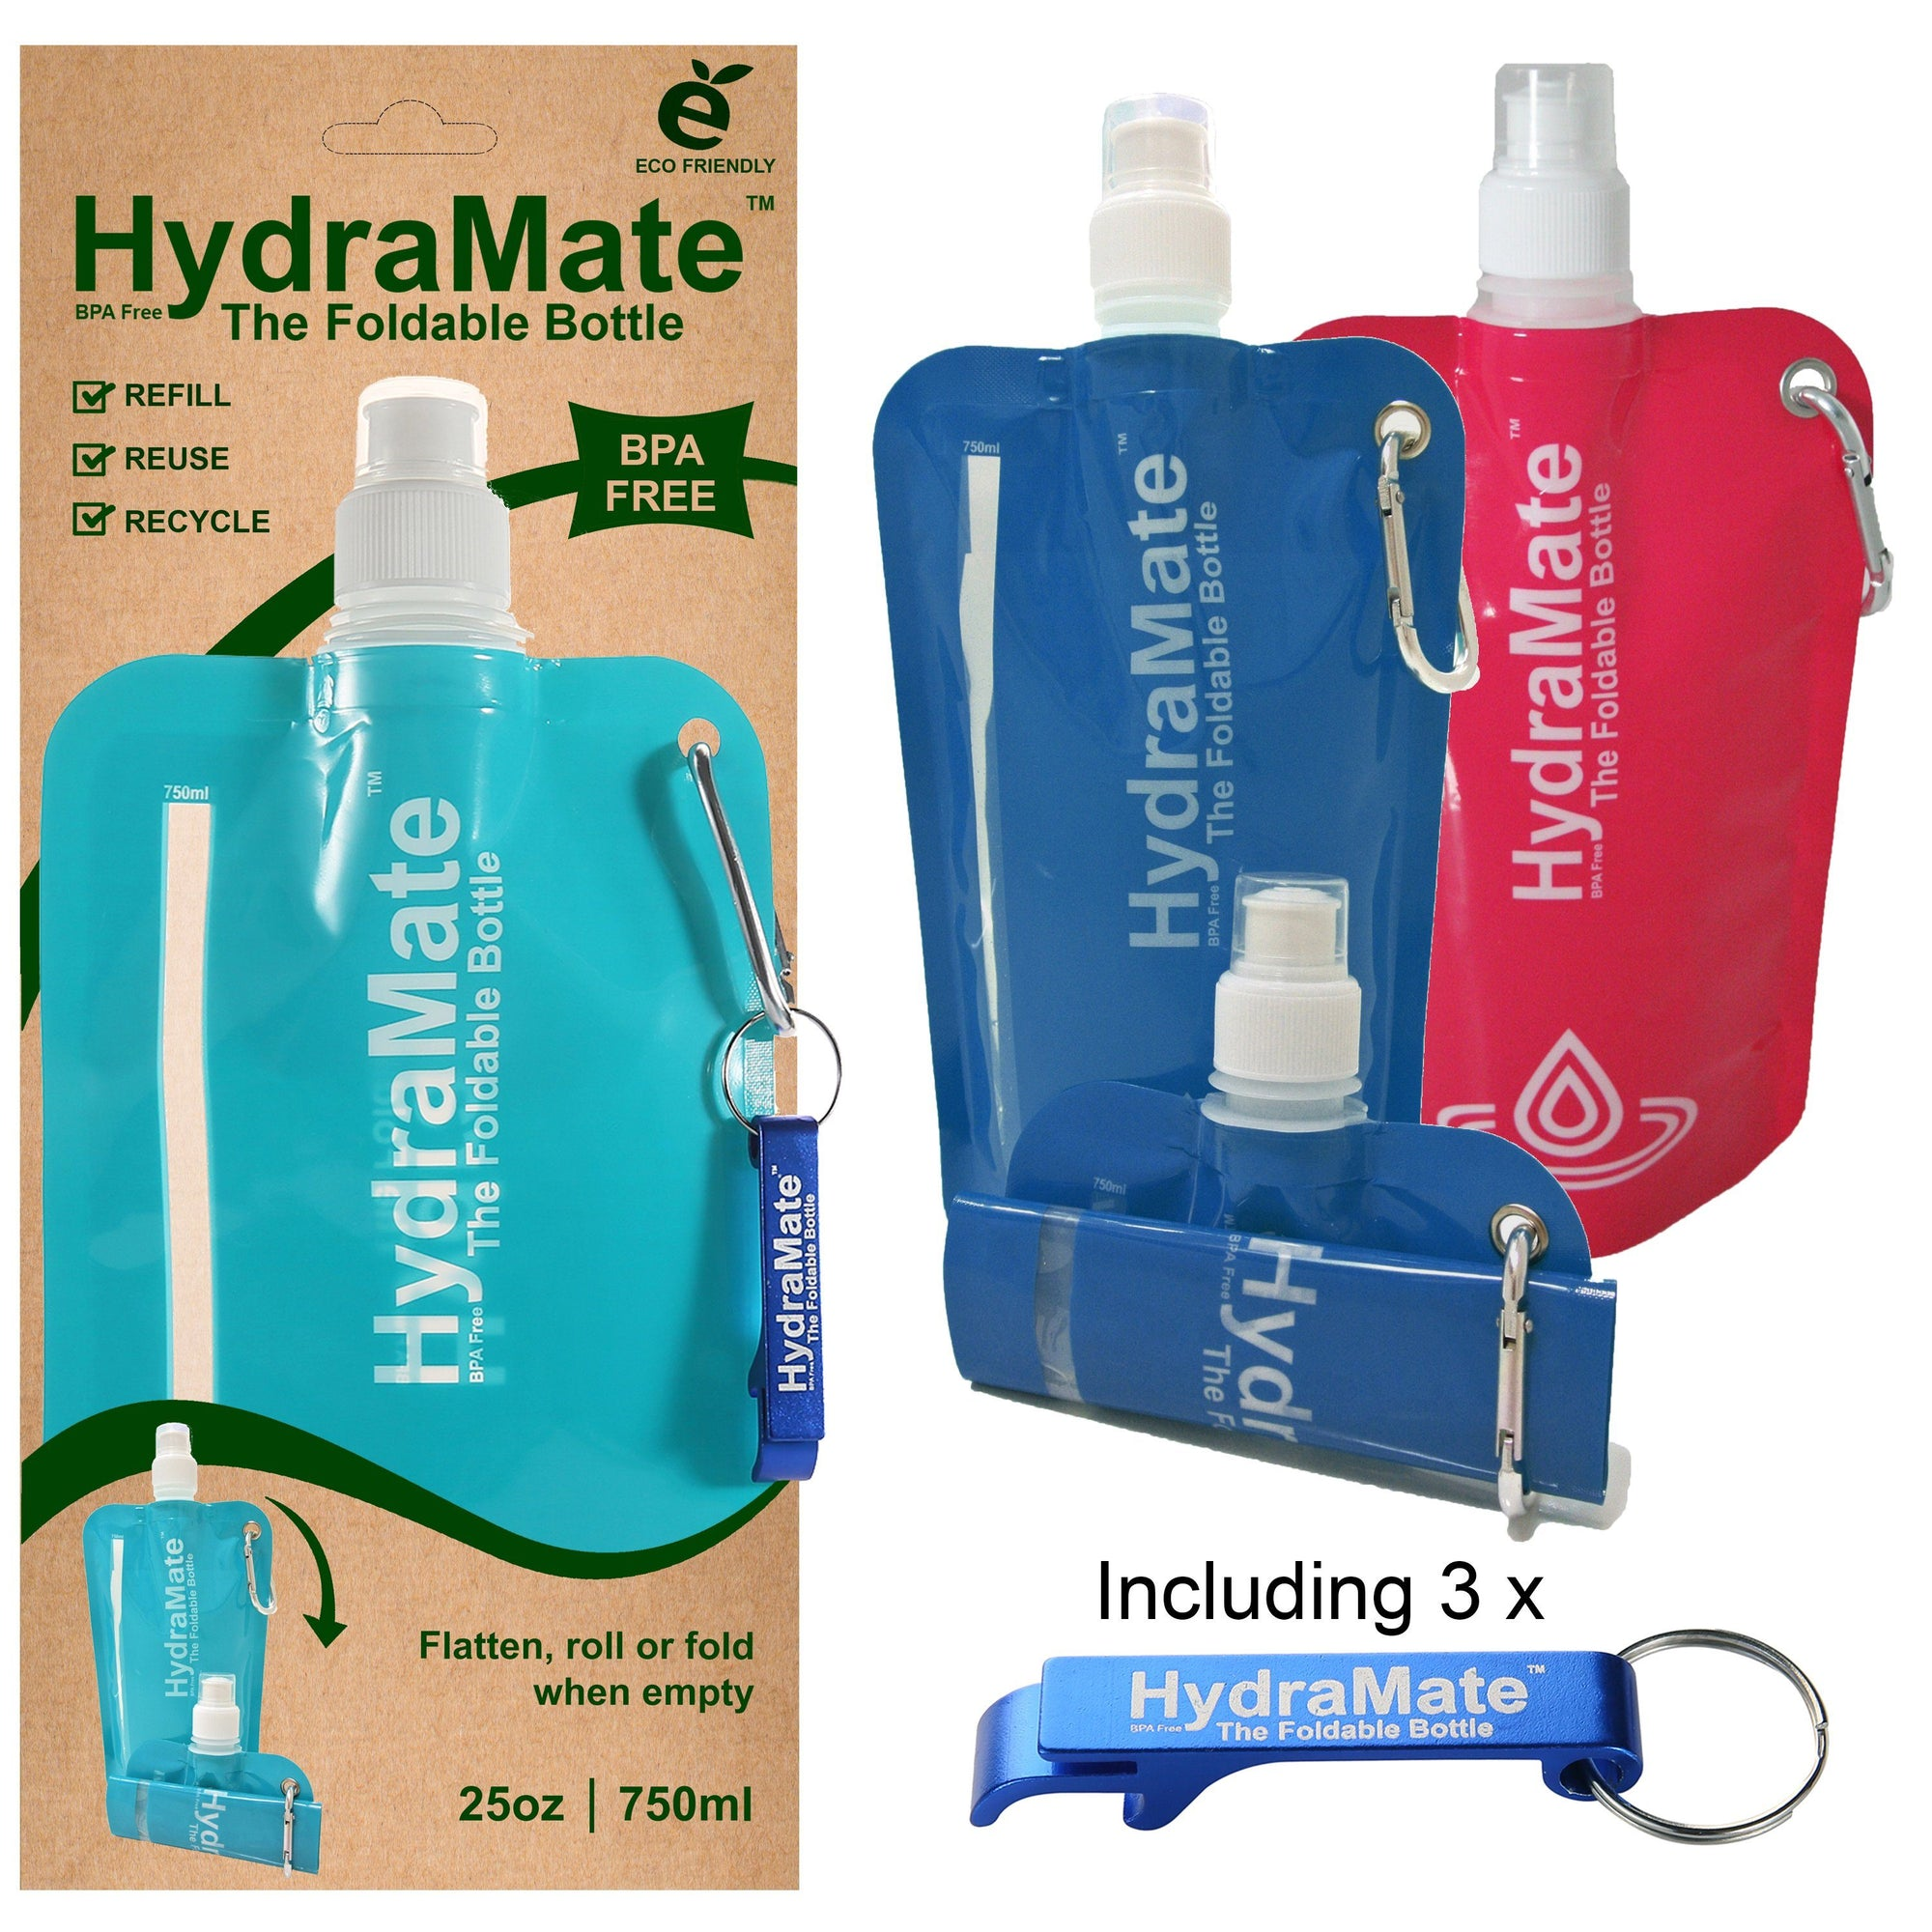 HydraMate The Foldable Bottle